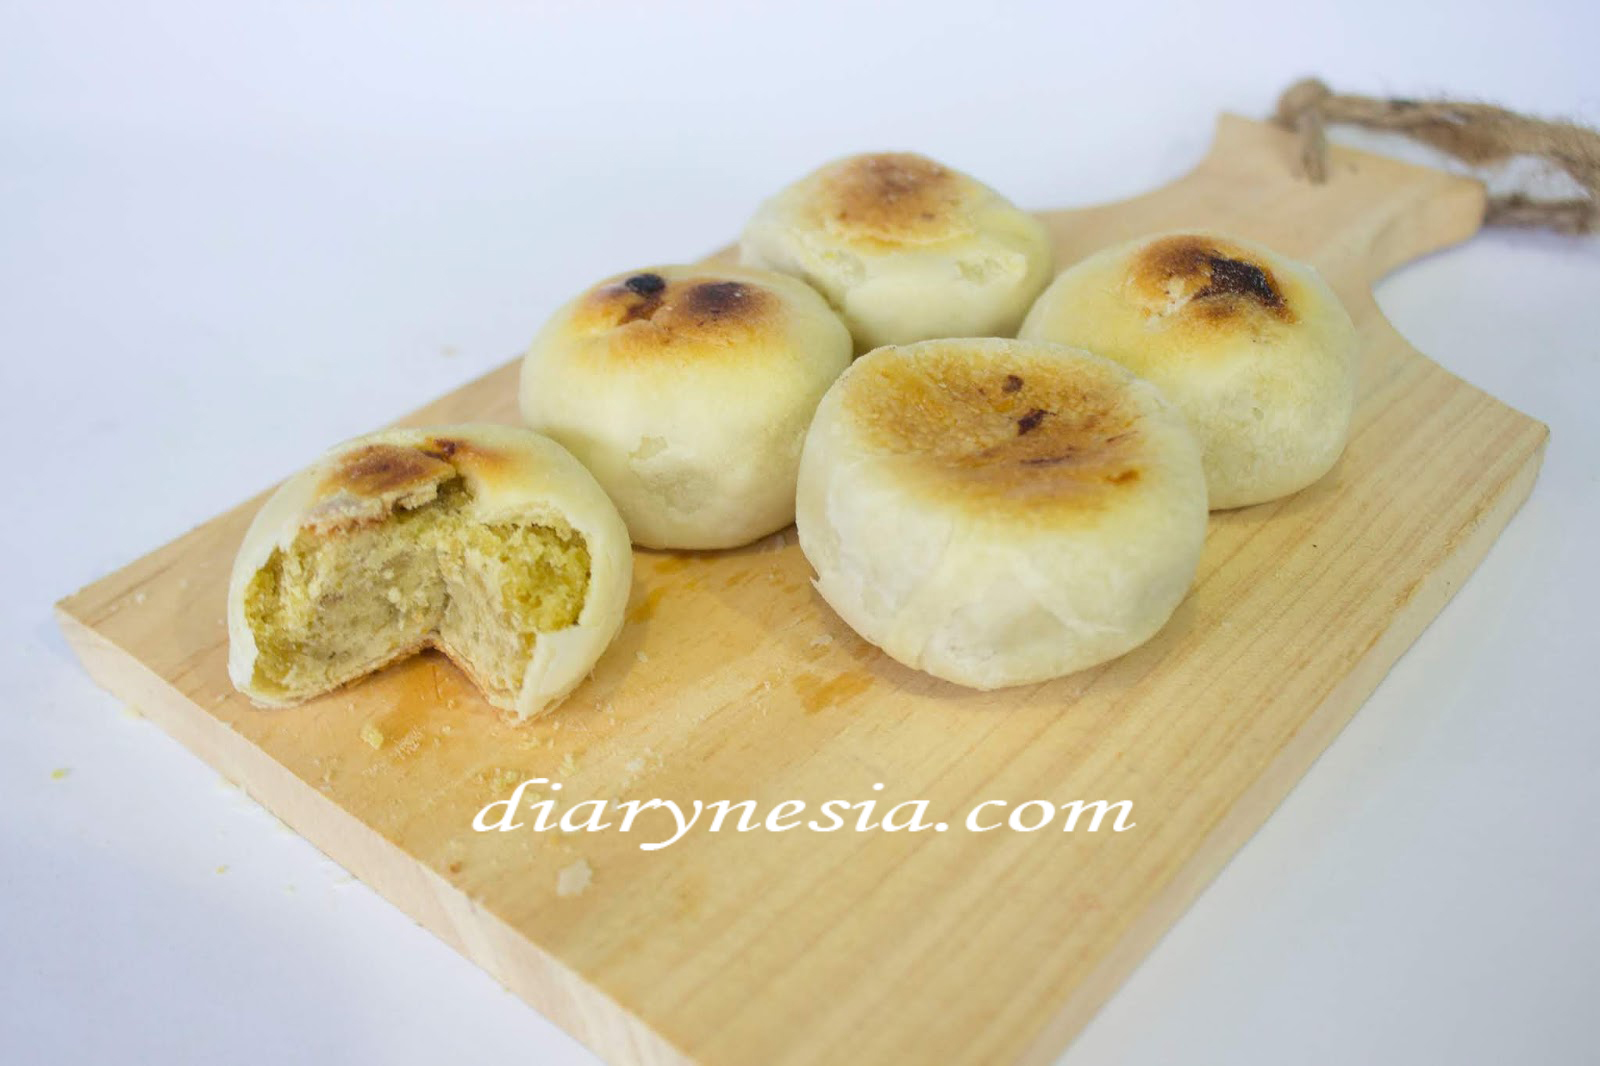 Bakpia traditional cuisine from Yogyakarta, favorite yogyakarta food souvenir, bakpia best culinary gift with a sweet taste, diarynesia